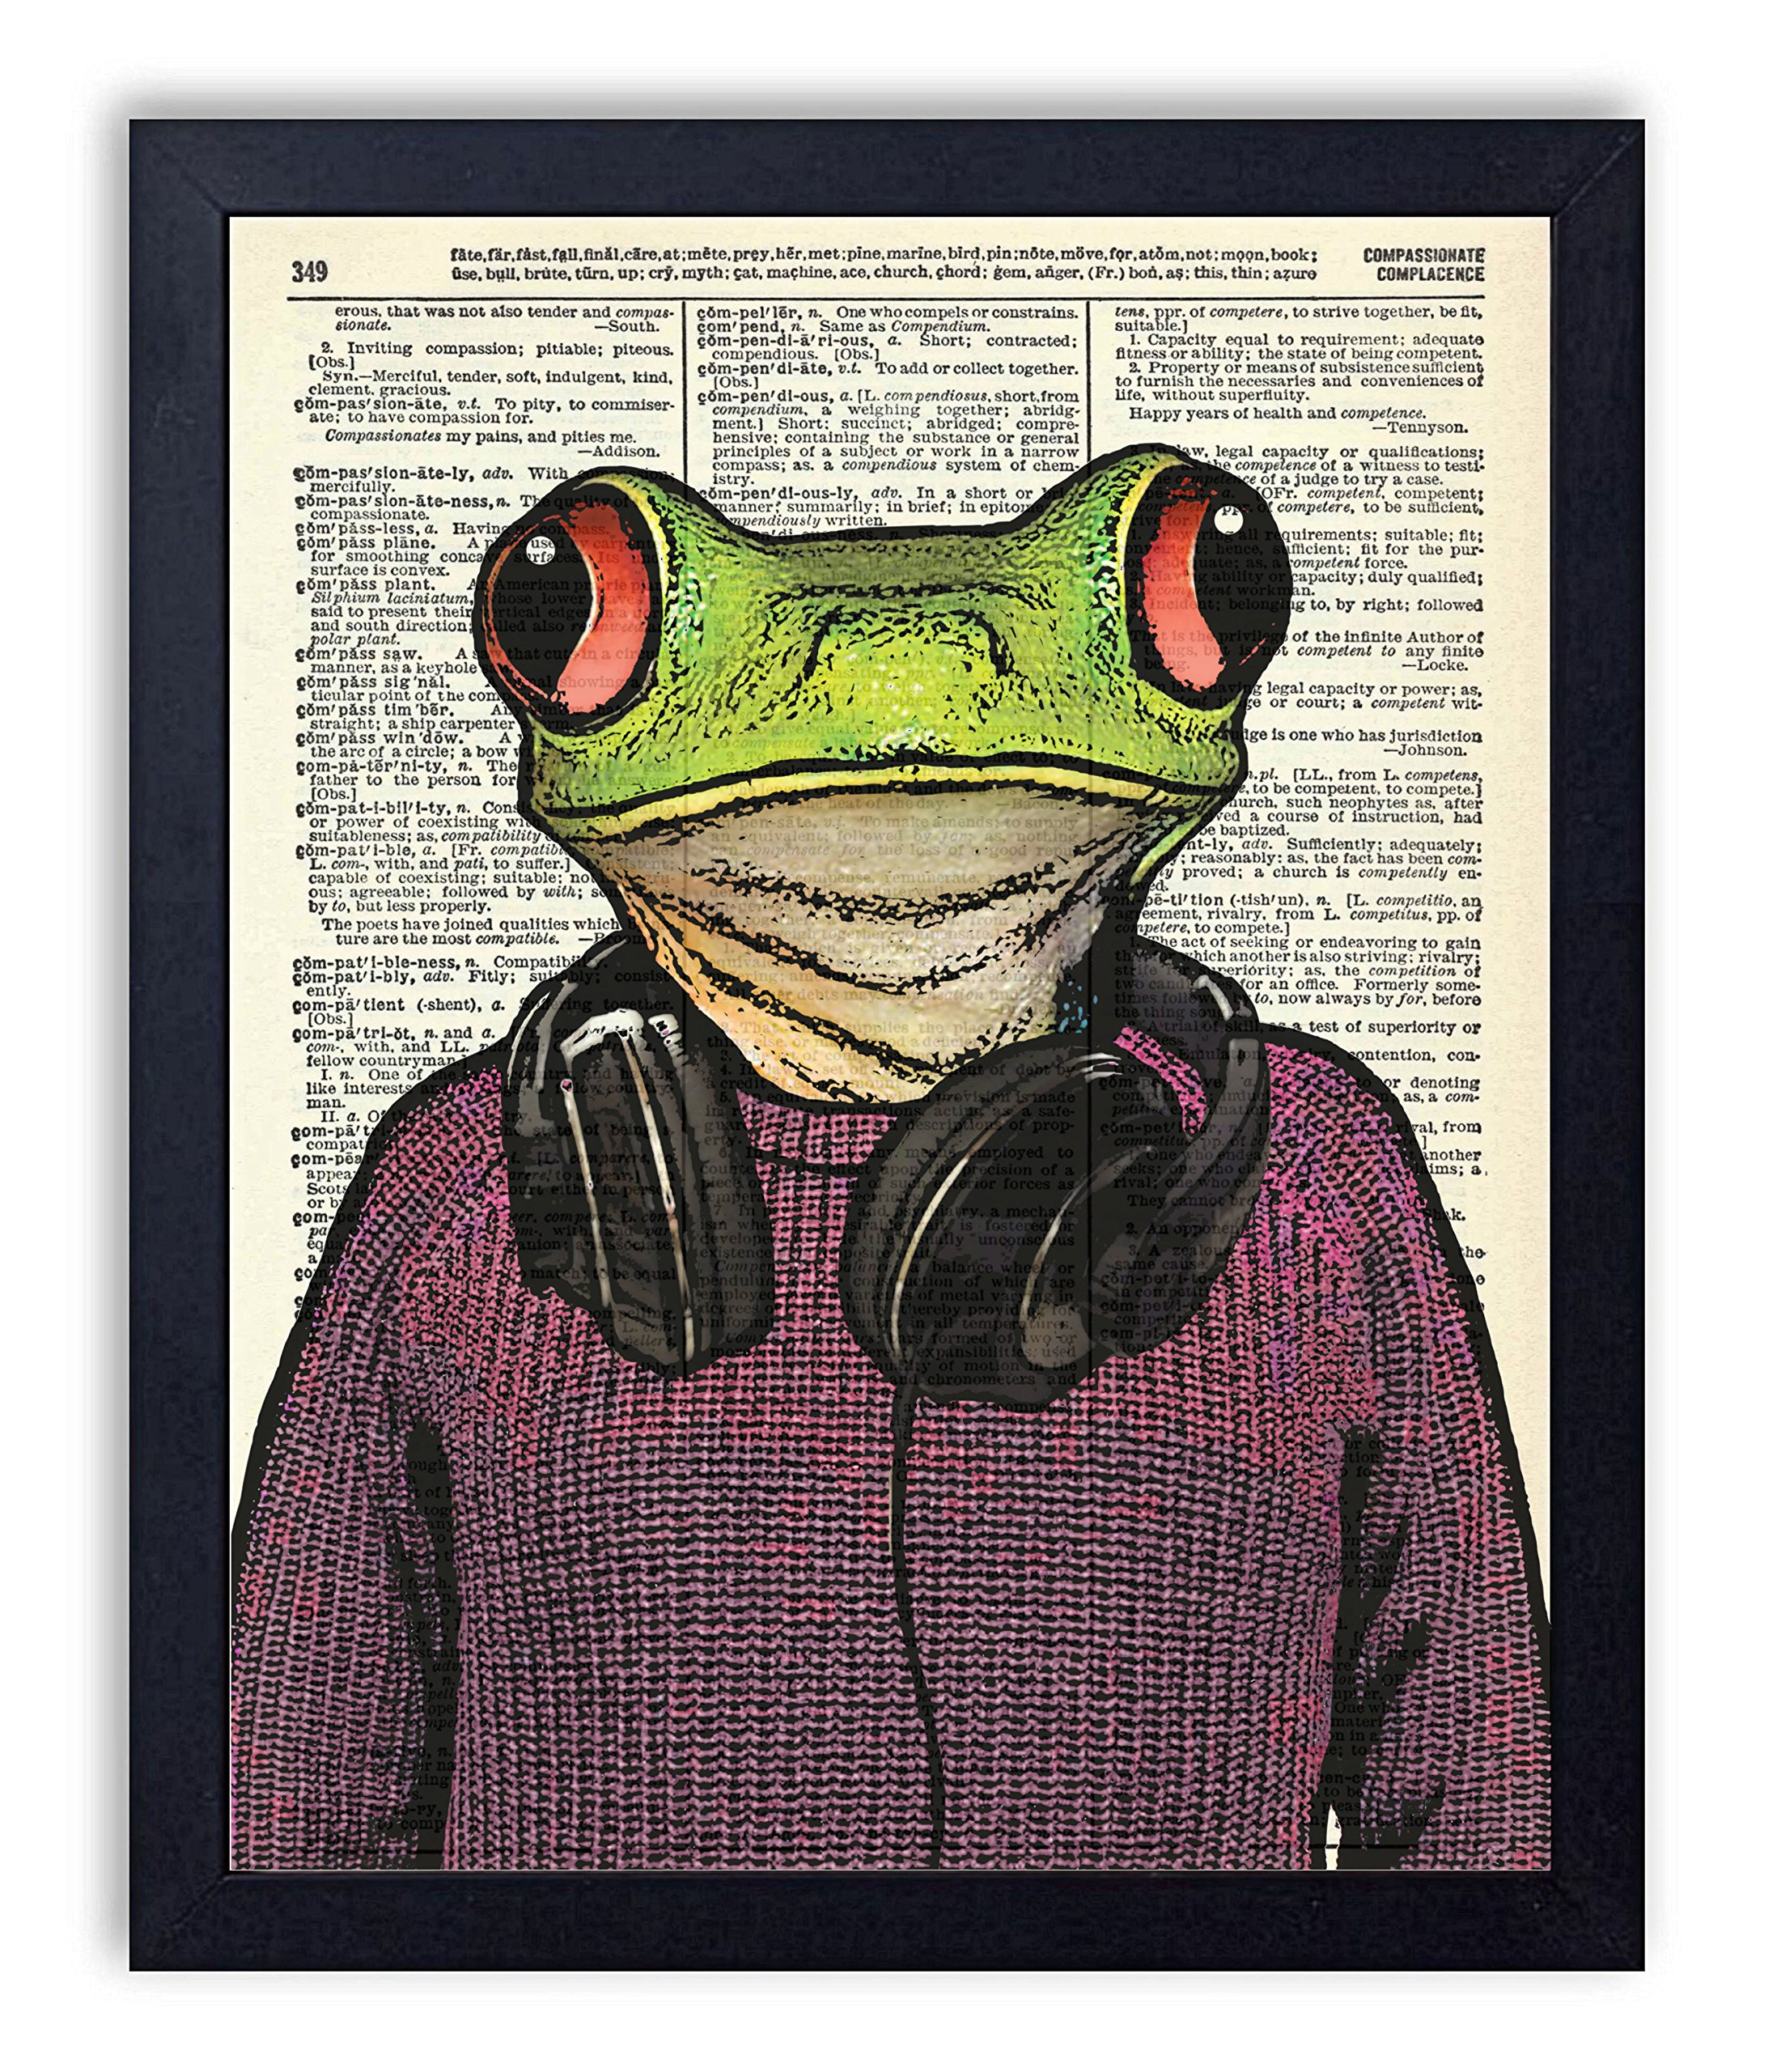 Hipster Frog Vintage Wall Art College Dorm Art Upcycled Dictionary Art Print Poster 8x10 inches, Unframed